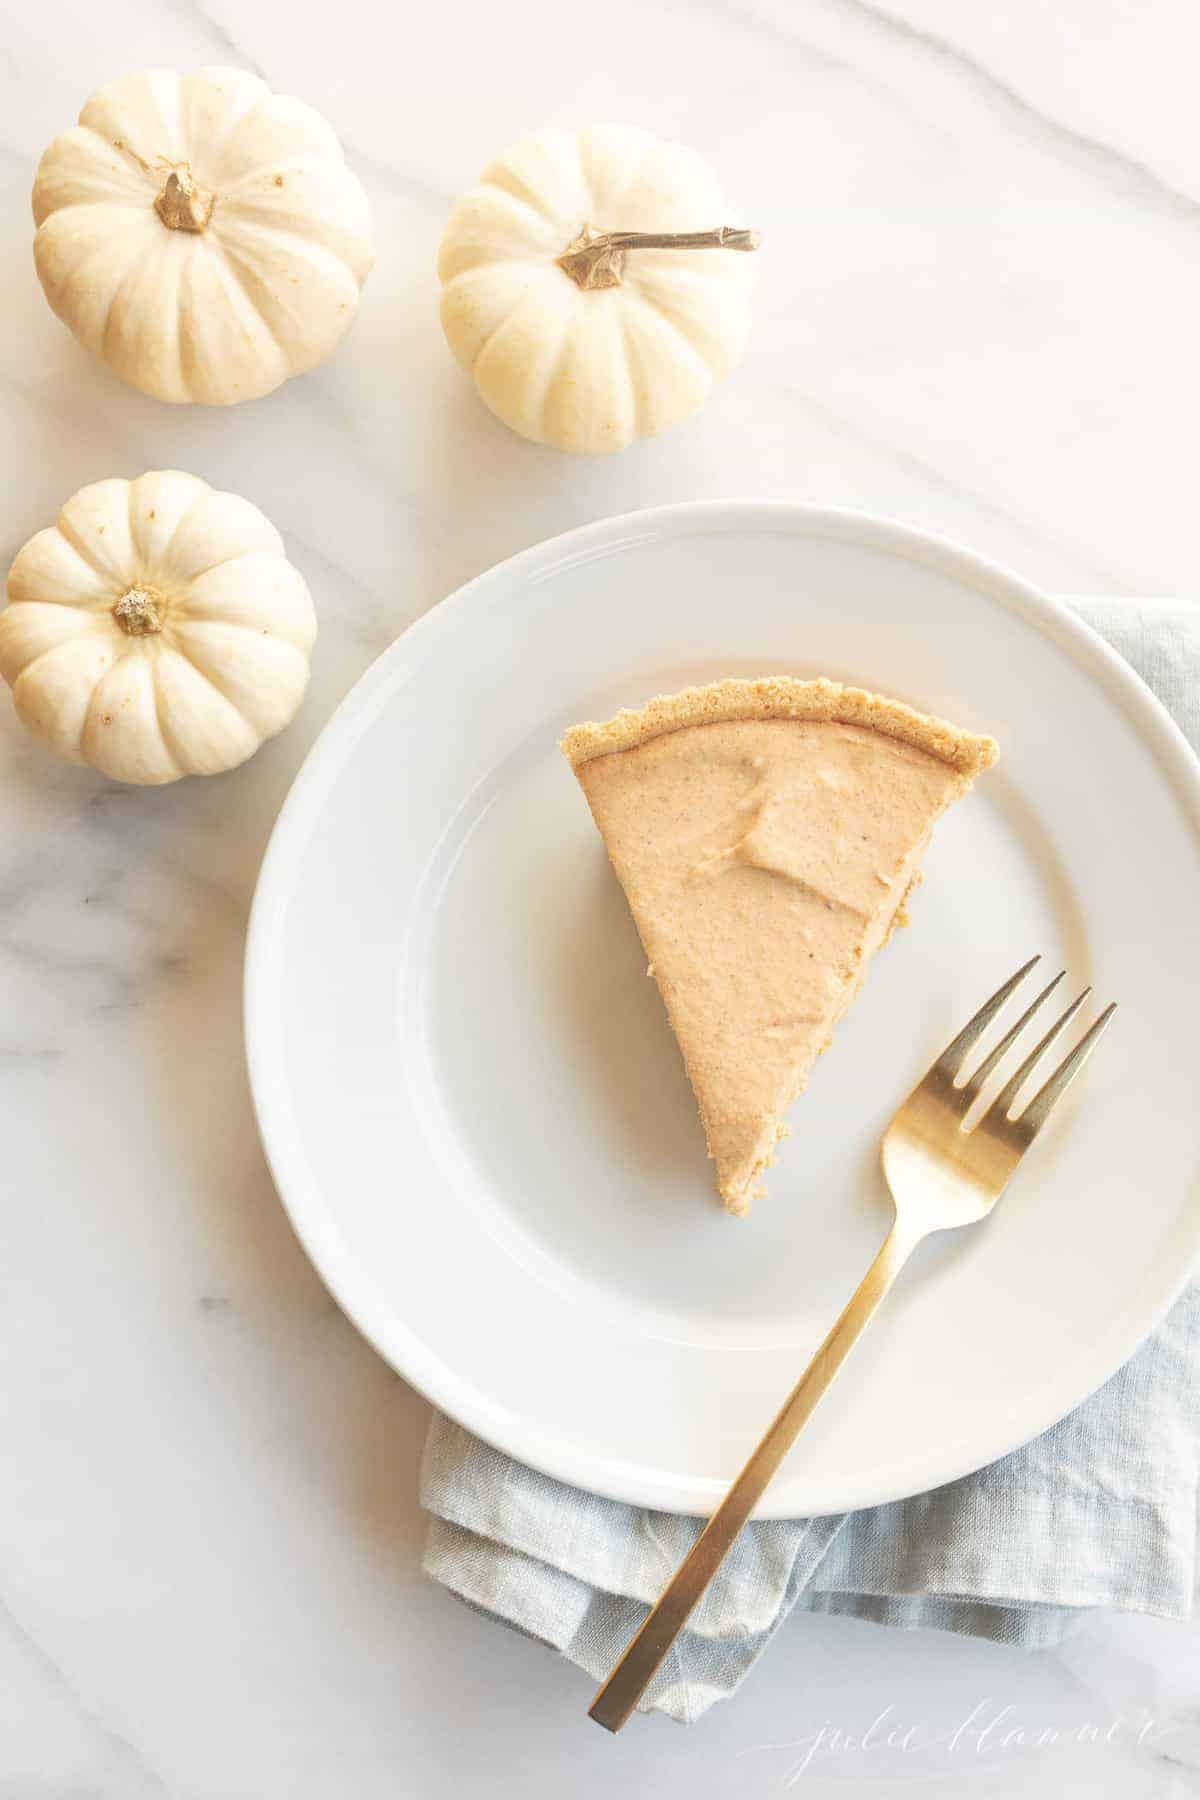 pumpkin cheesecake on a plate with napkin fork and mini pumpkins by plate